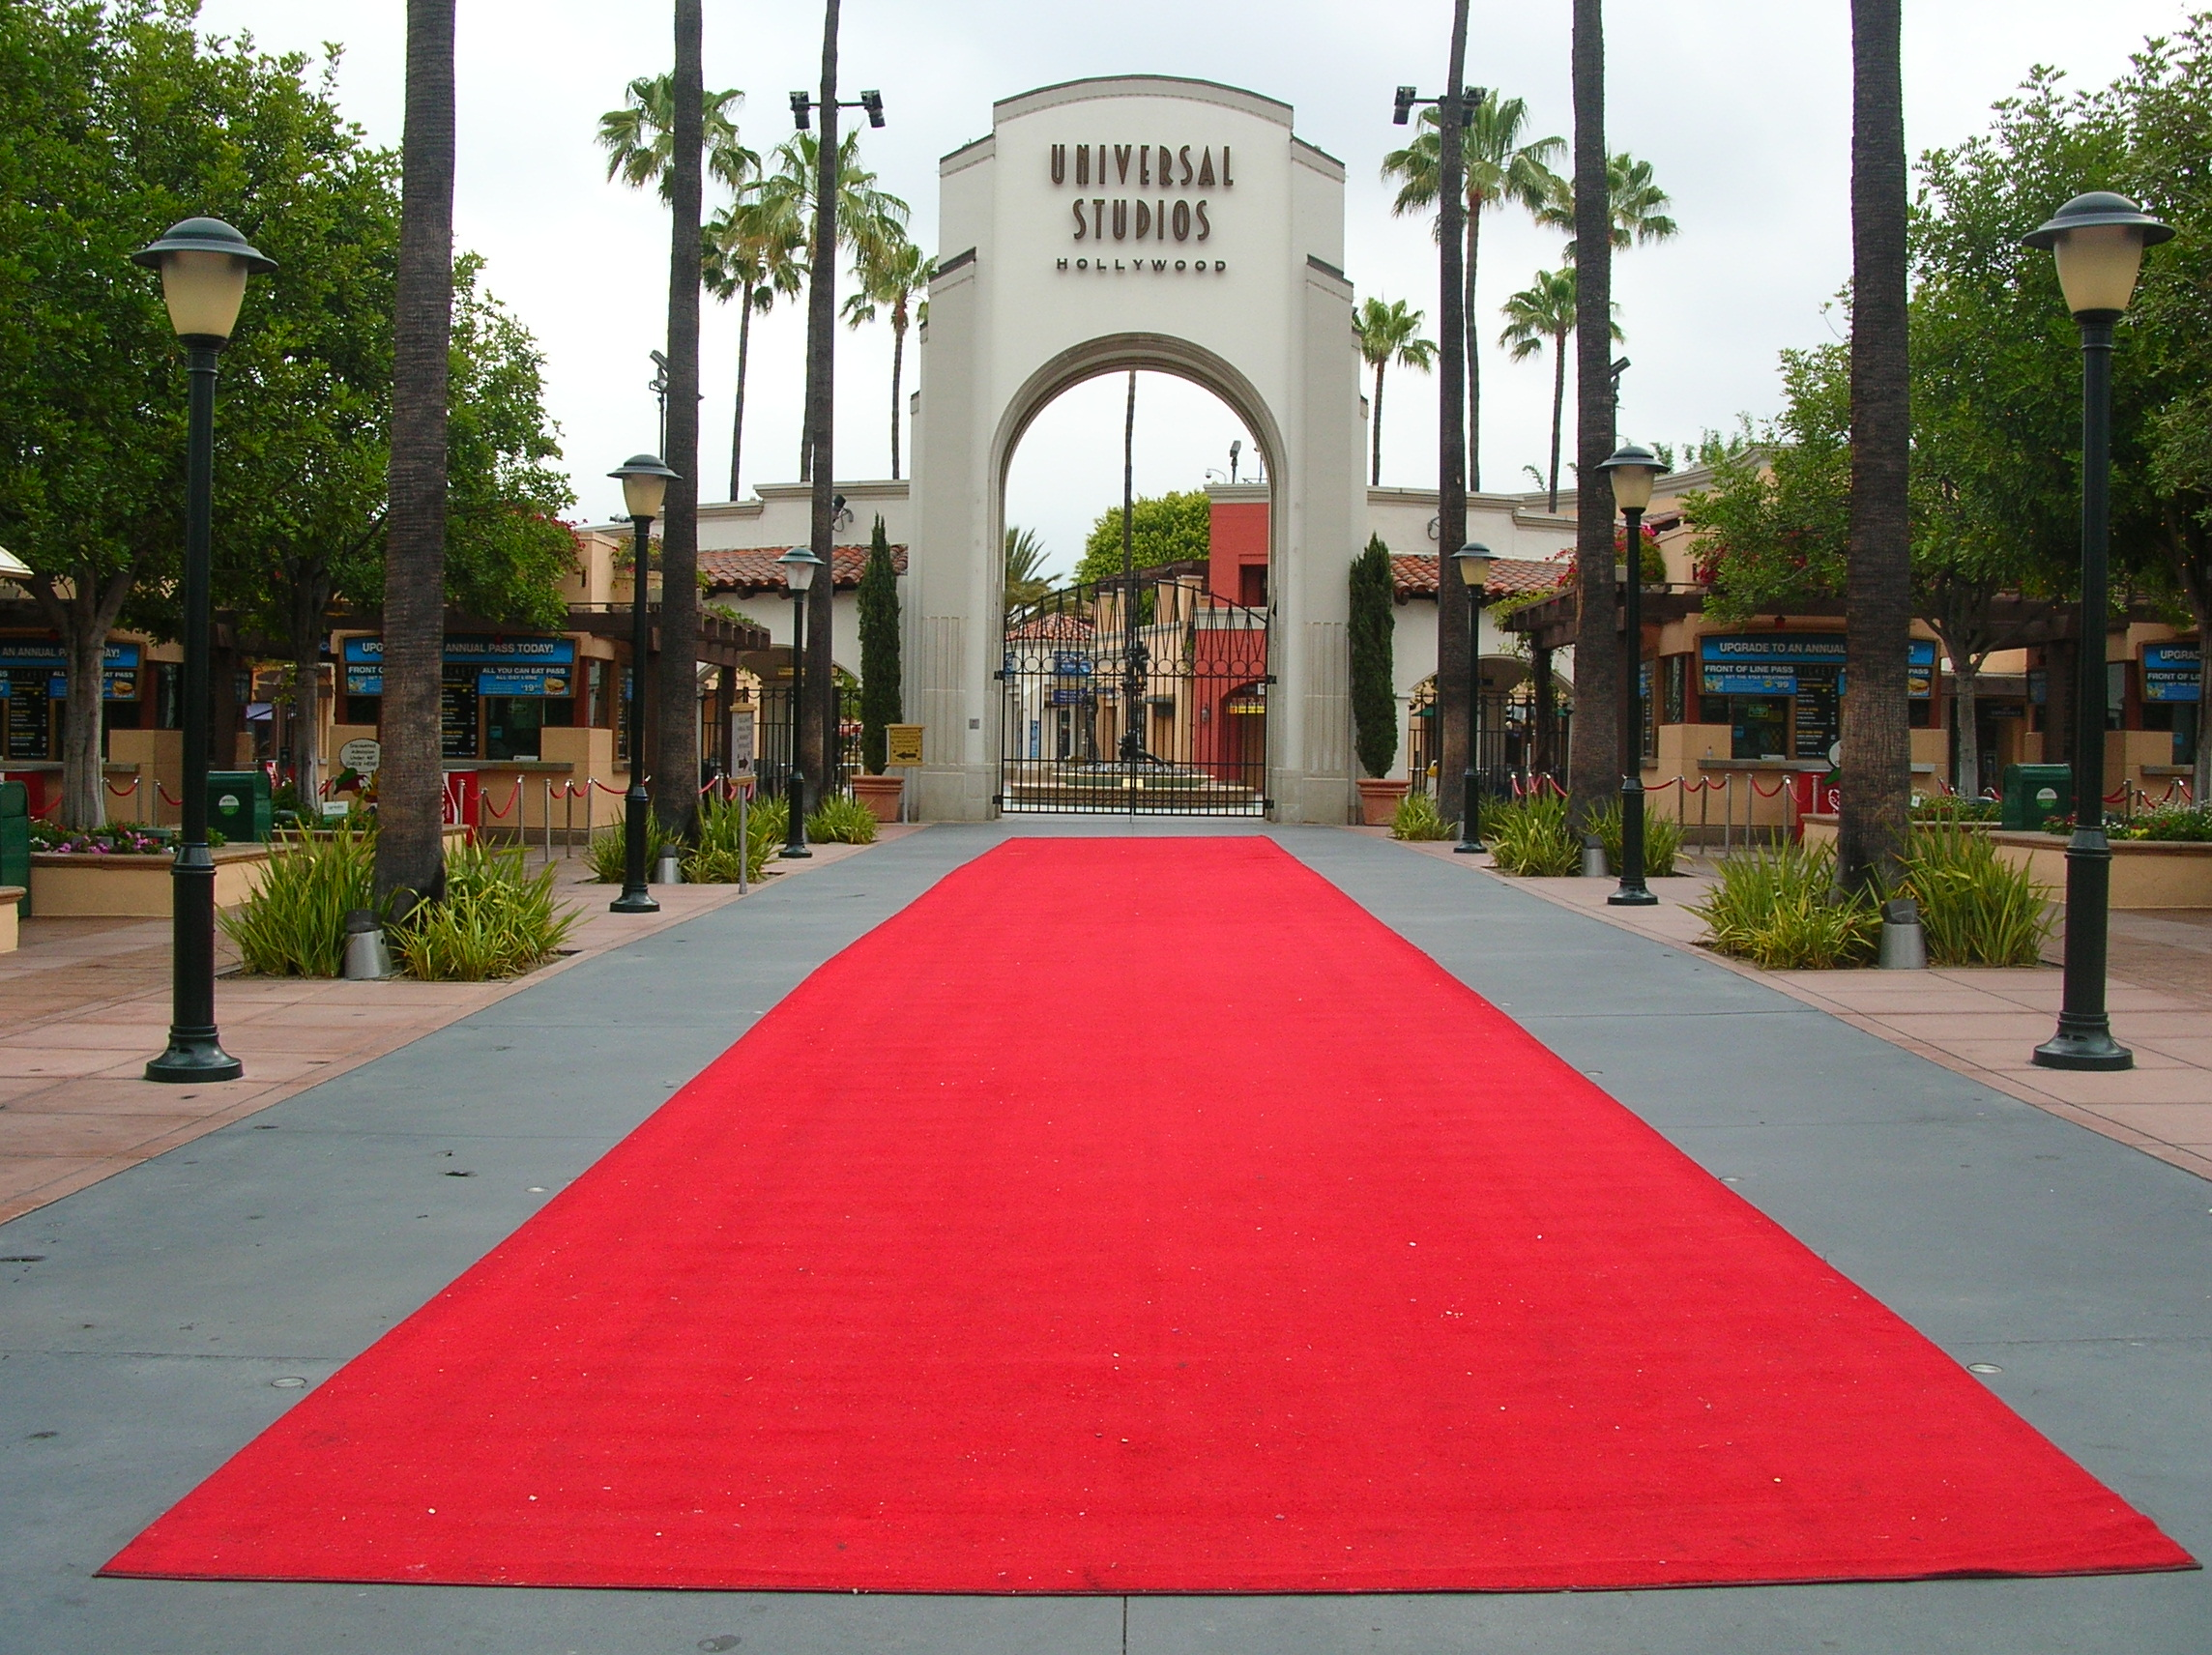 Rolled out red carpet at Universal Studios HollywoodJPGred20carpet 2288x1712